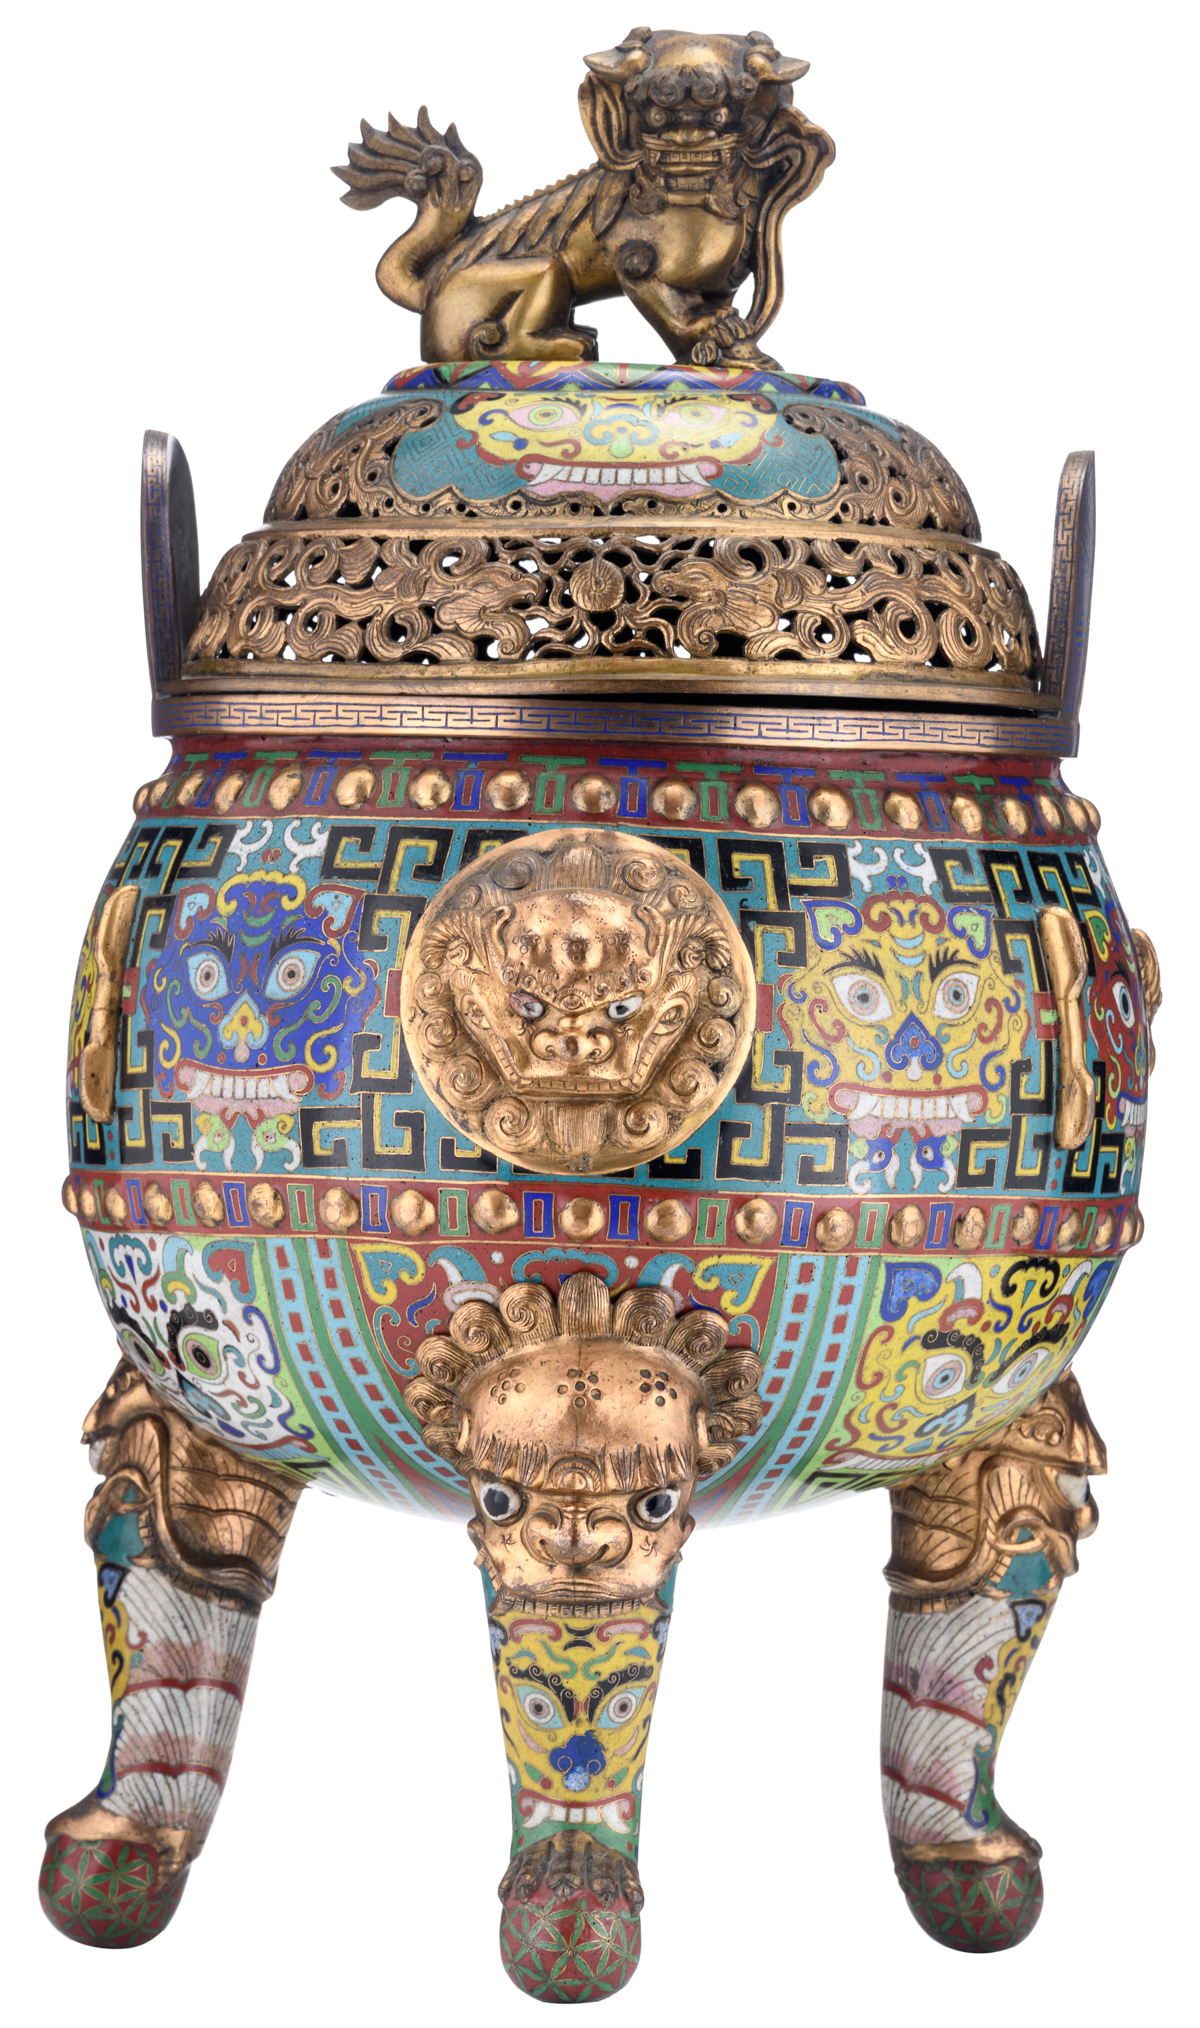 Lot 2 - A Chinese tripod bronze cloisonné incense burner, the body decorated with enameled and appliqué gilt